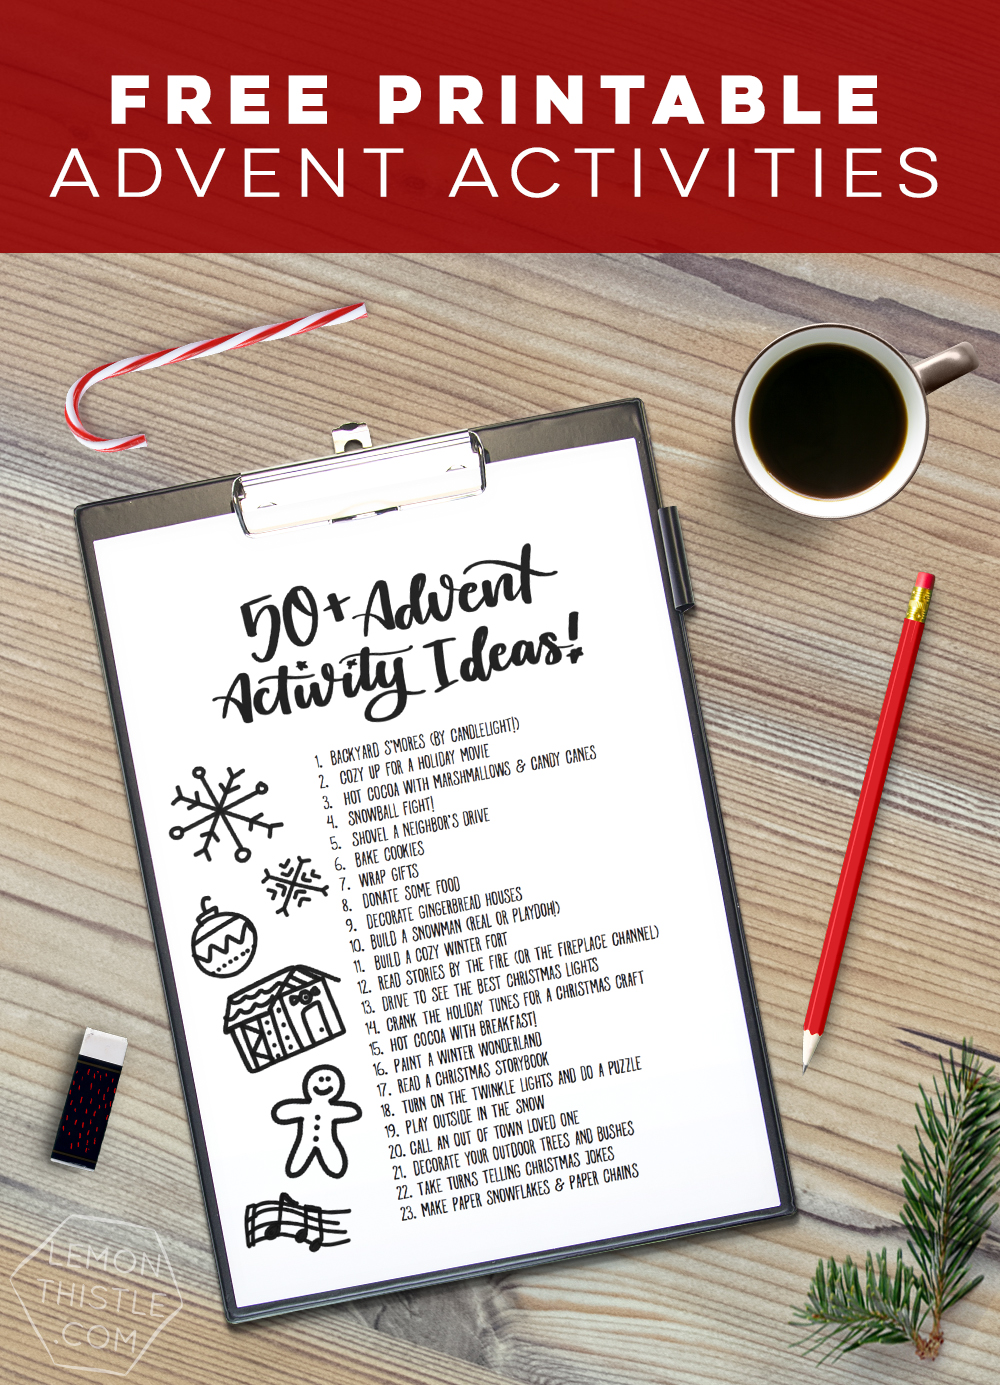 50+ Advent activity ideas! I am always stuck for ideas so this free printable is perfect to have on hand for the countdown to Christmas